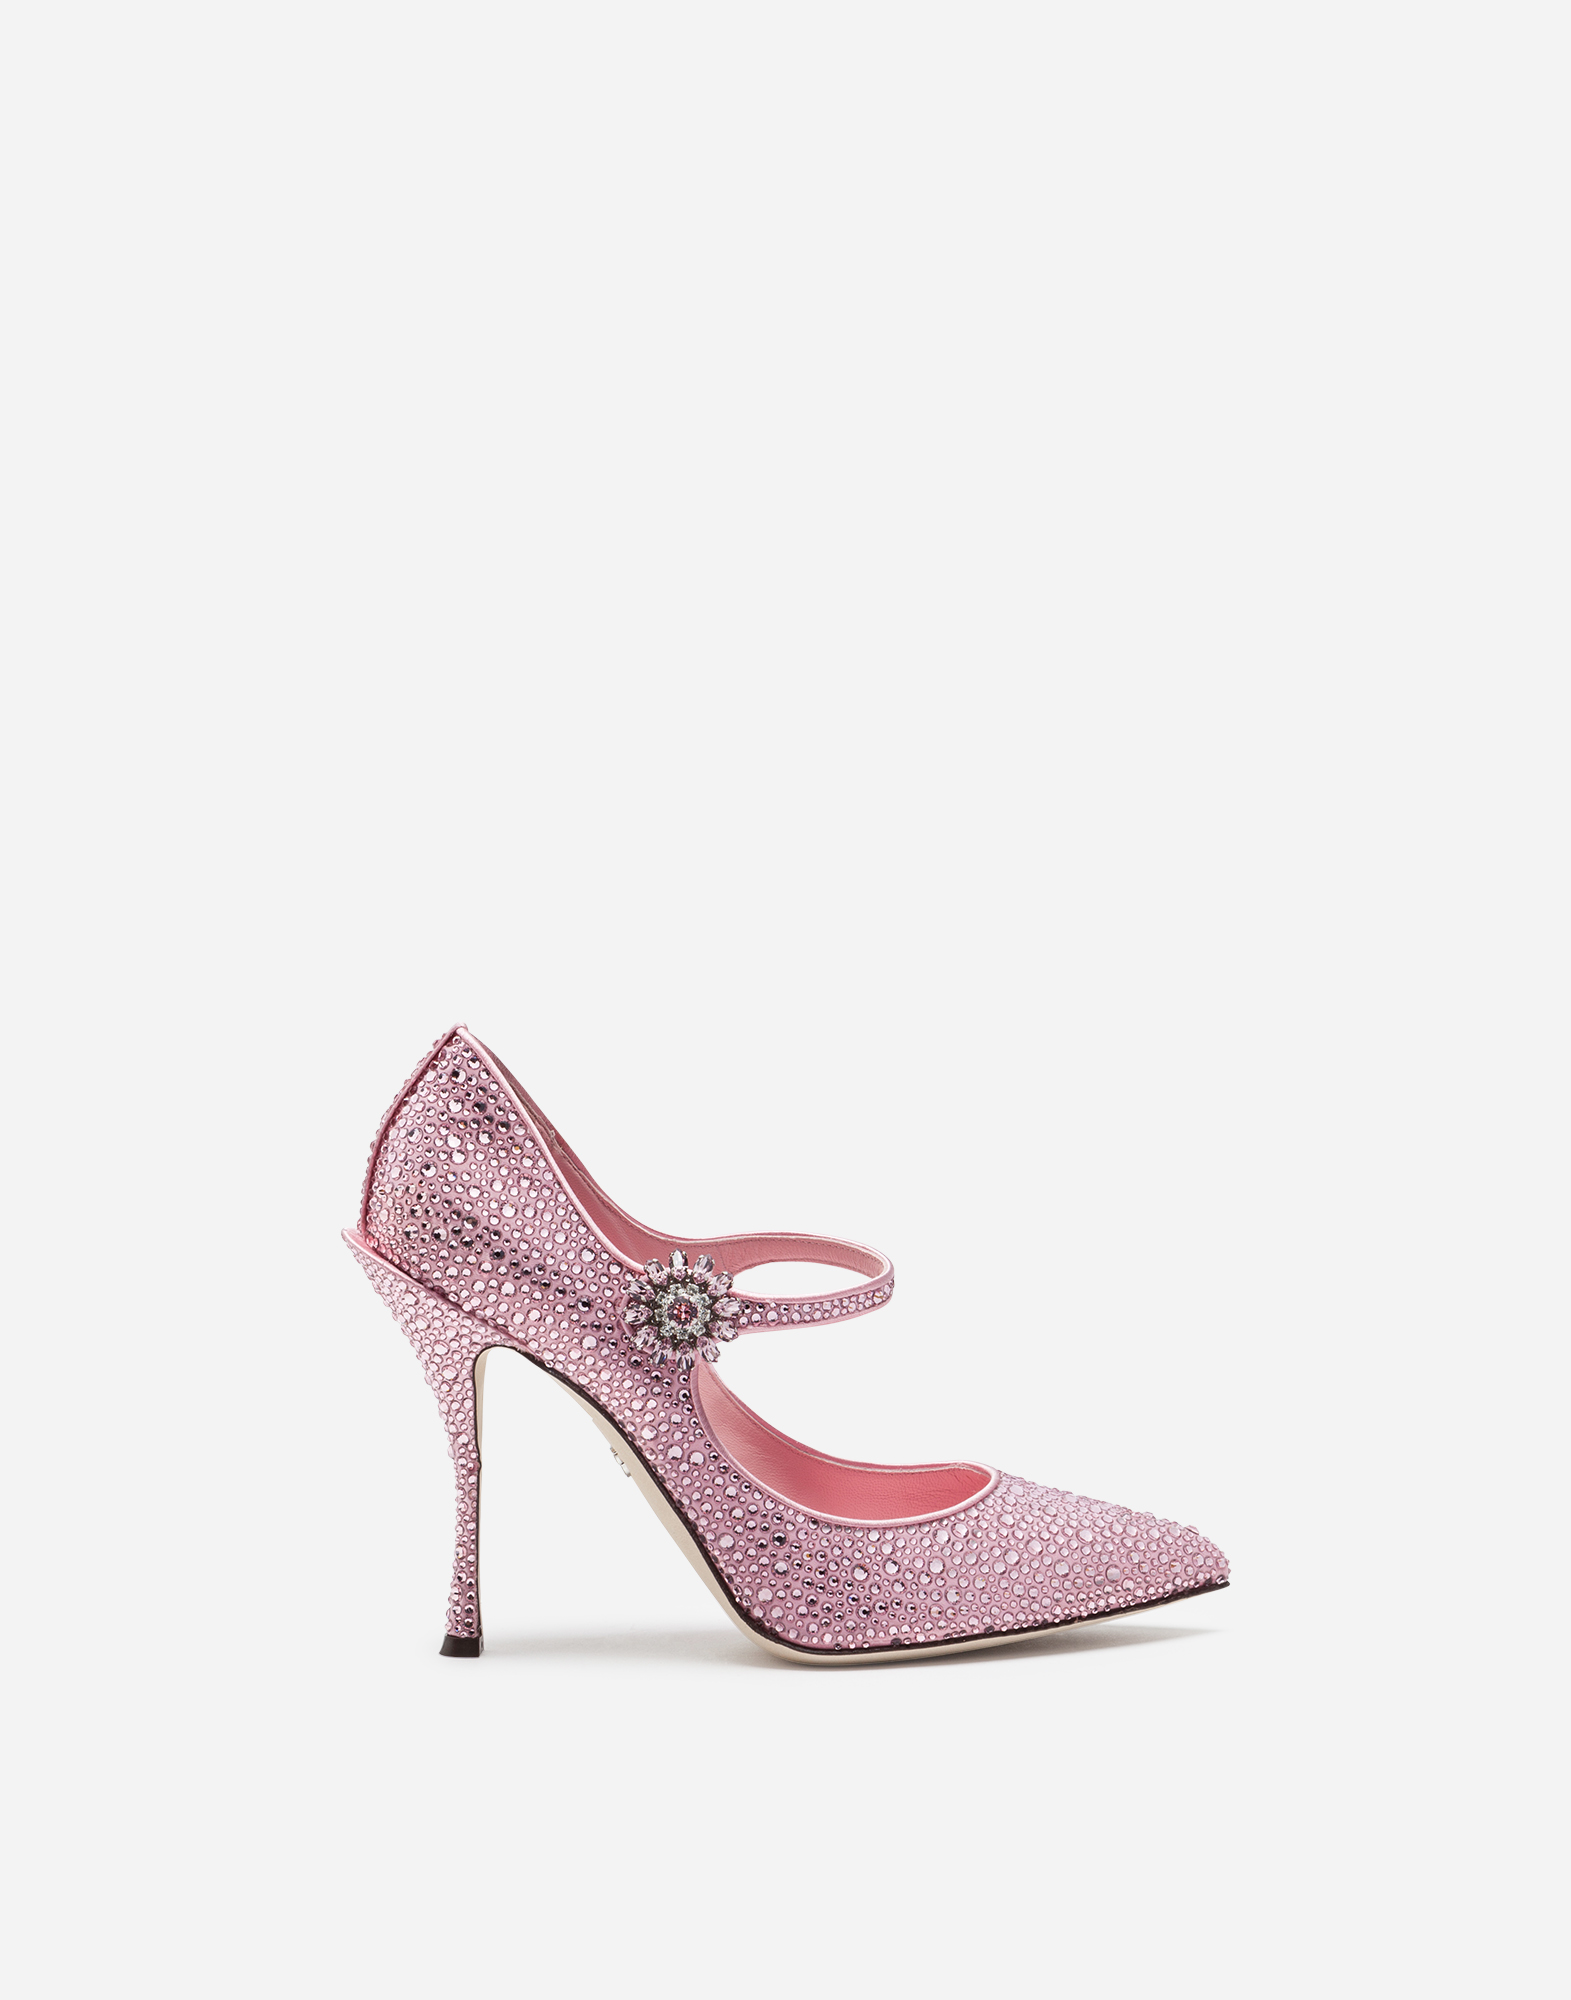 Dolce&Gabbana SATIN MARY JANES WITH CRYSTALS